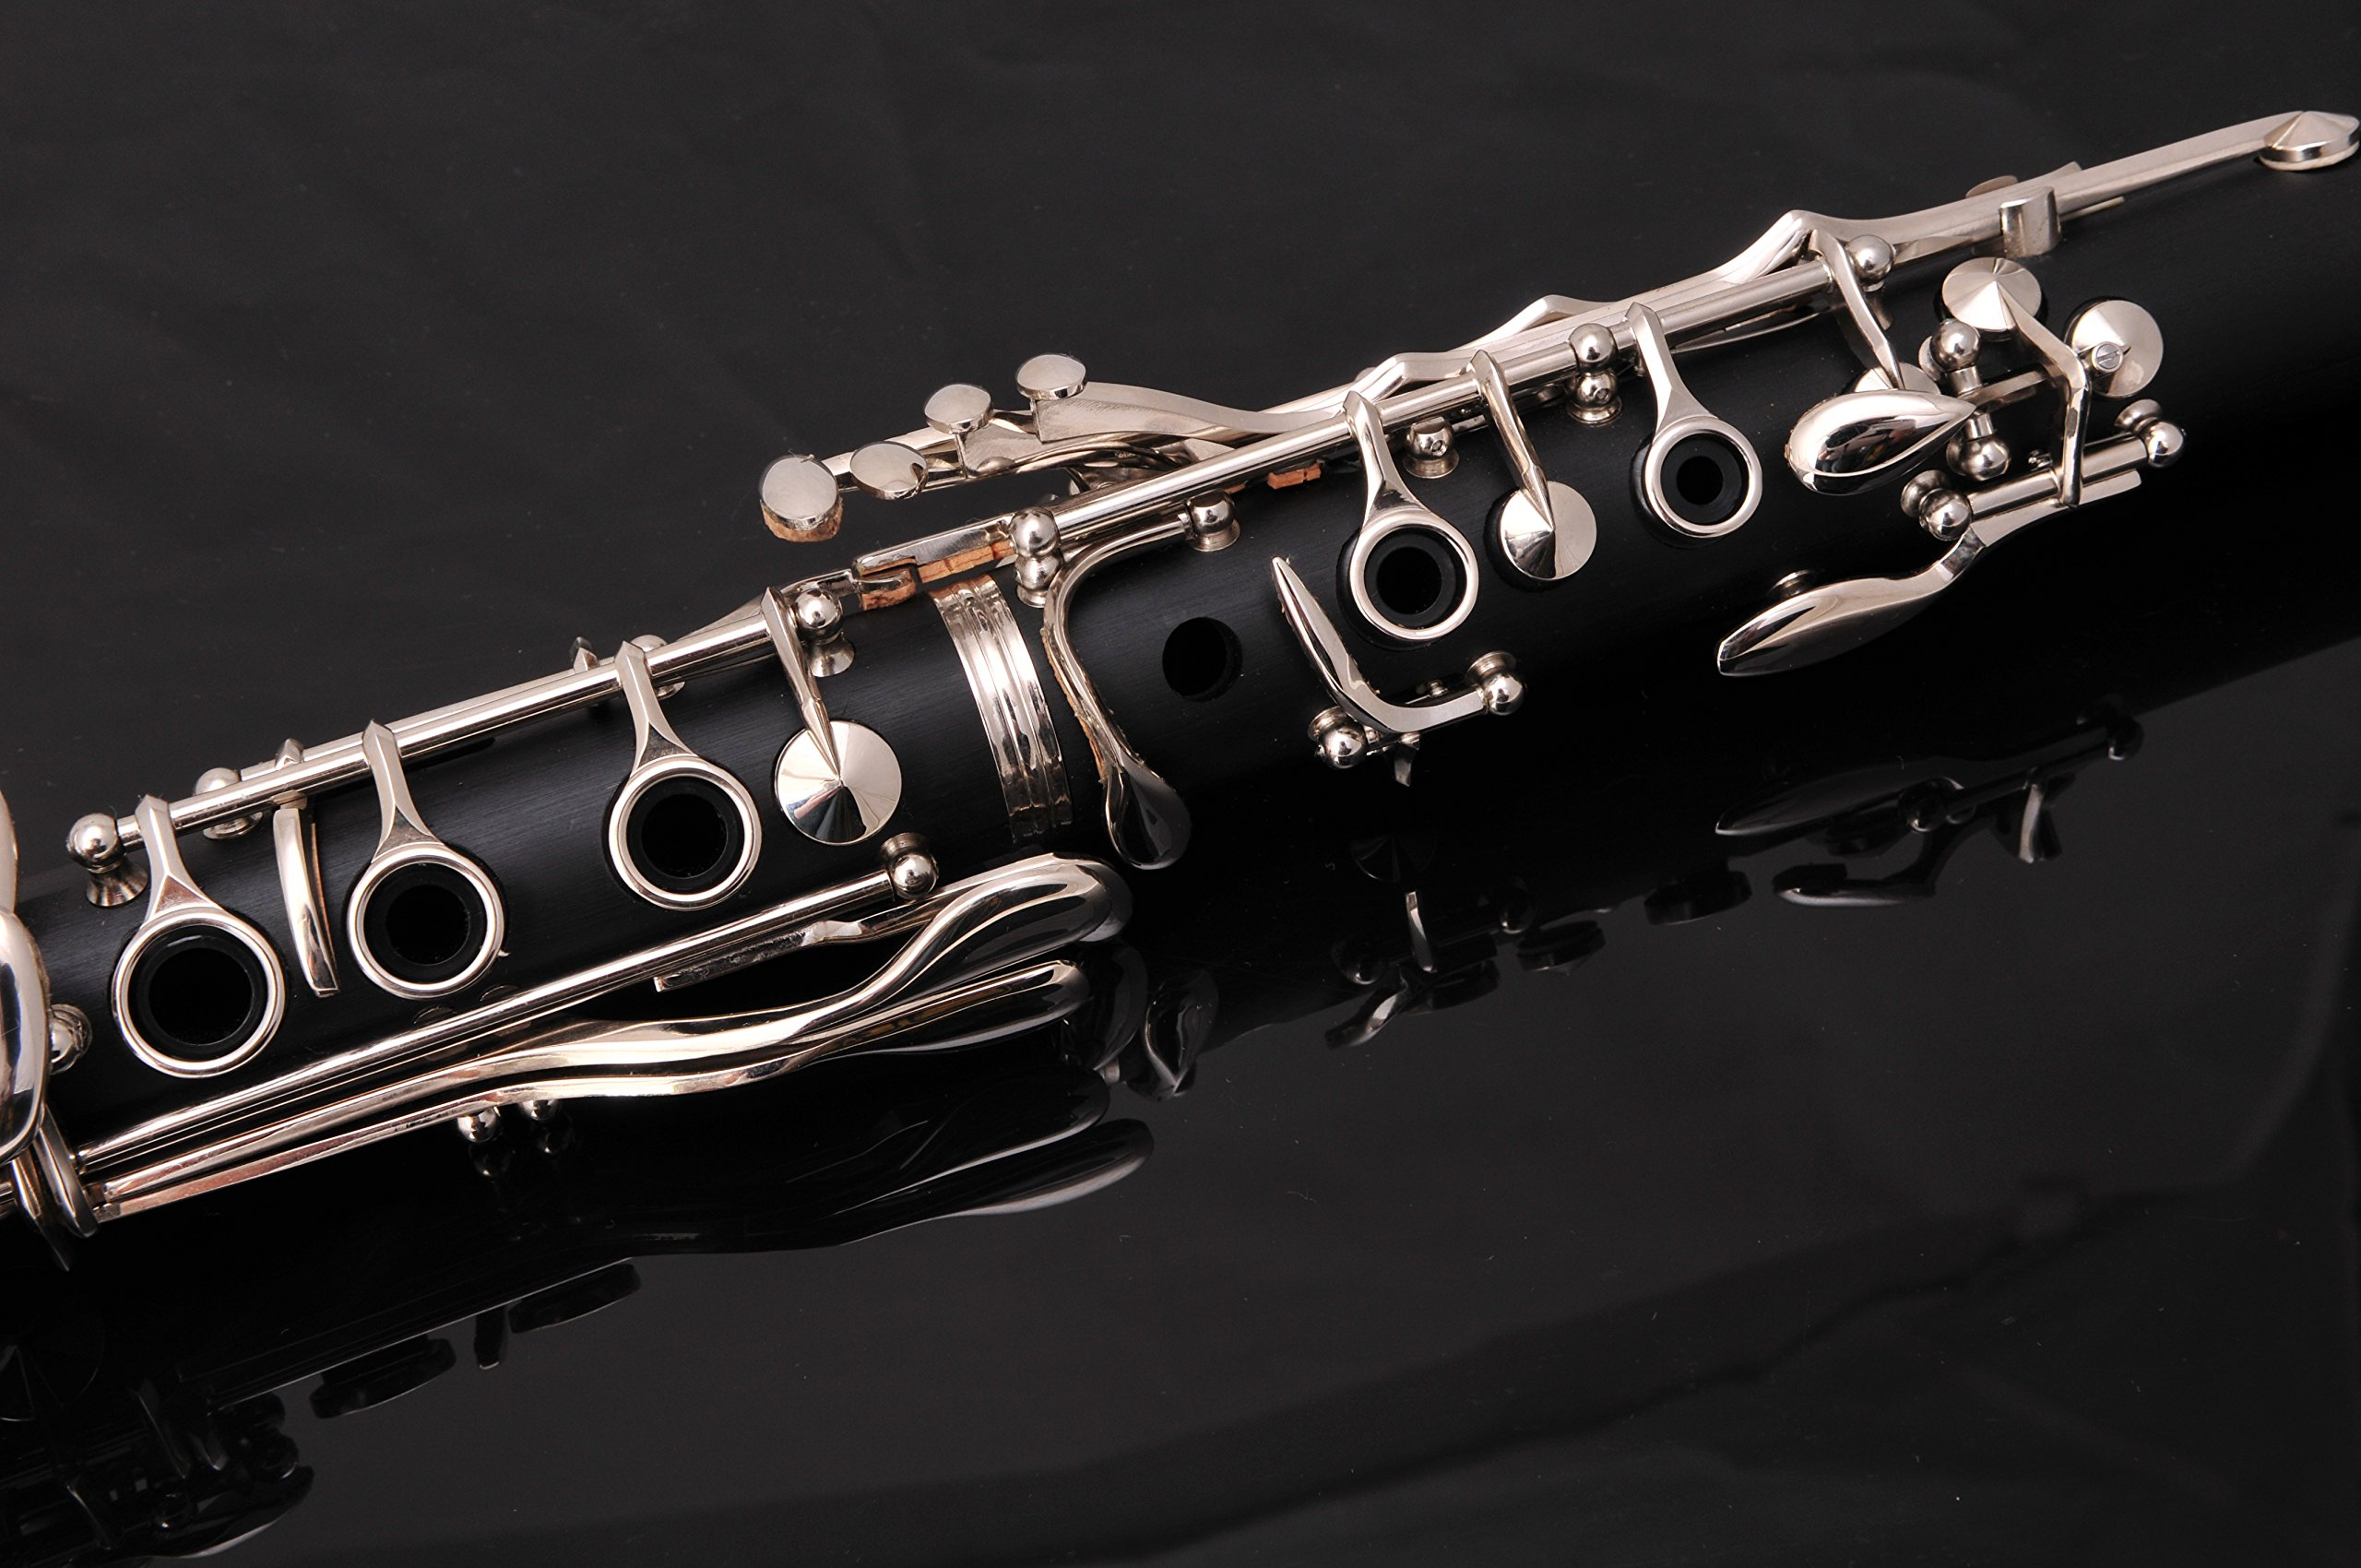 Glory B Flat Black Ebonite Clarinet with 2 Barrels, 11reeds,8 Pads Cushions,case,carekit and More Black/silver Keys by GLORY